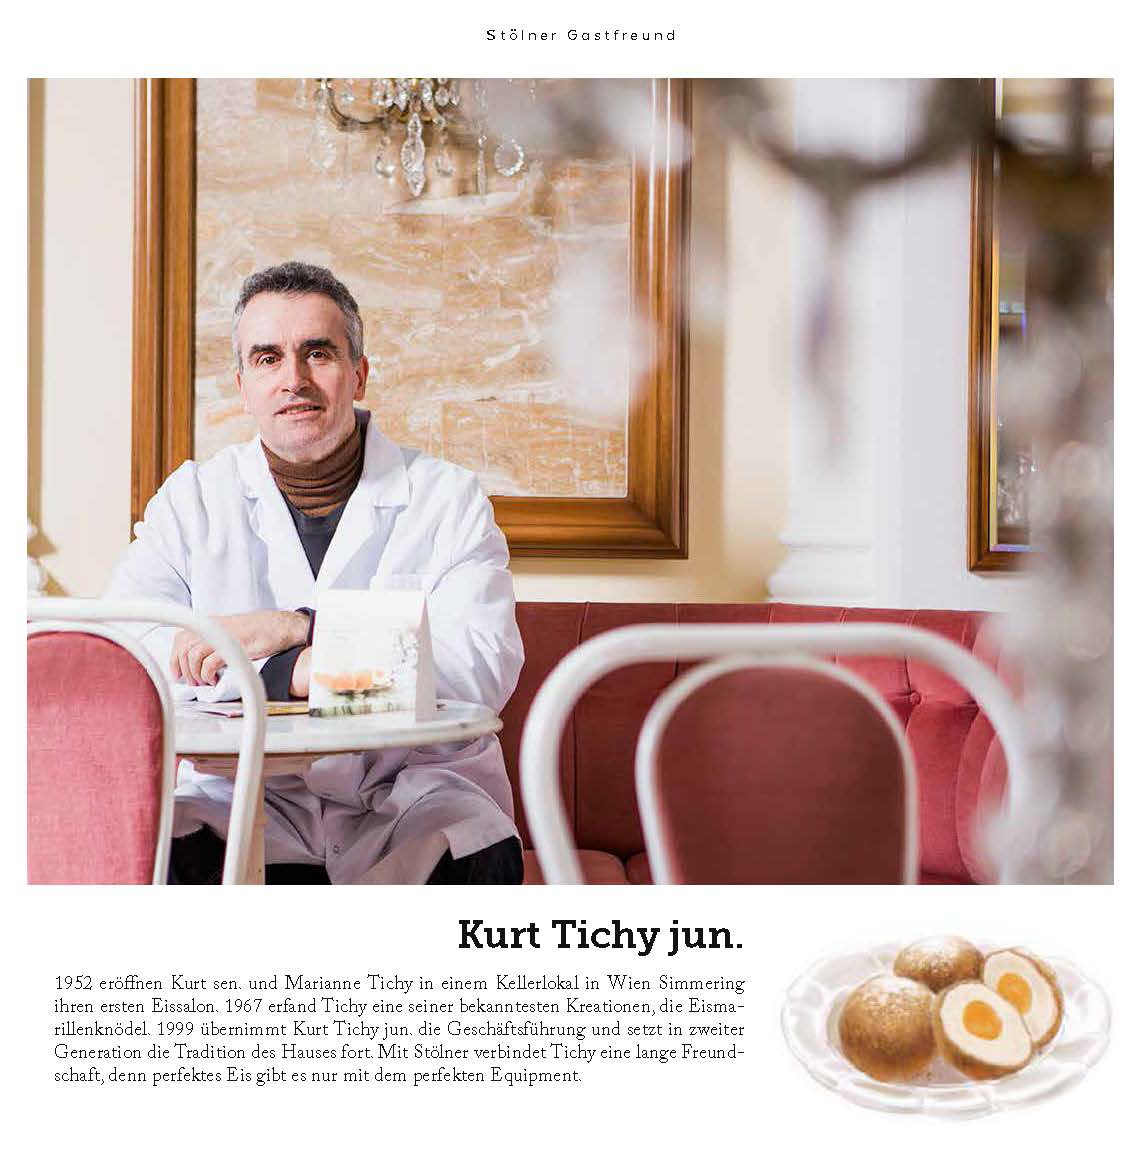 Zutat 9/2015 Gastfreund Kurt Tichy jun. (c)kheymach Magazindesign